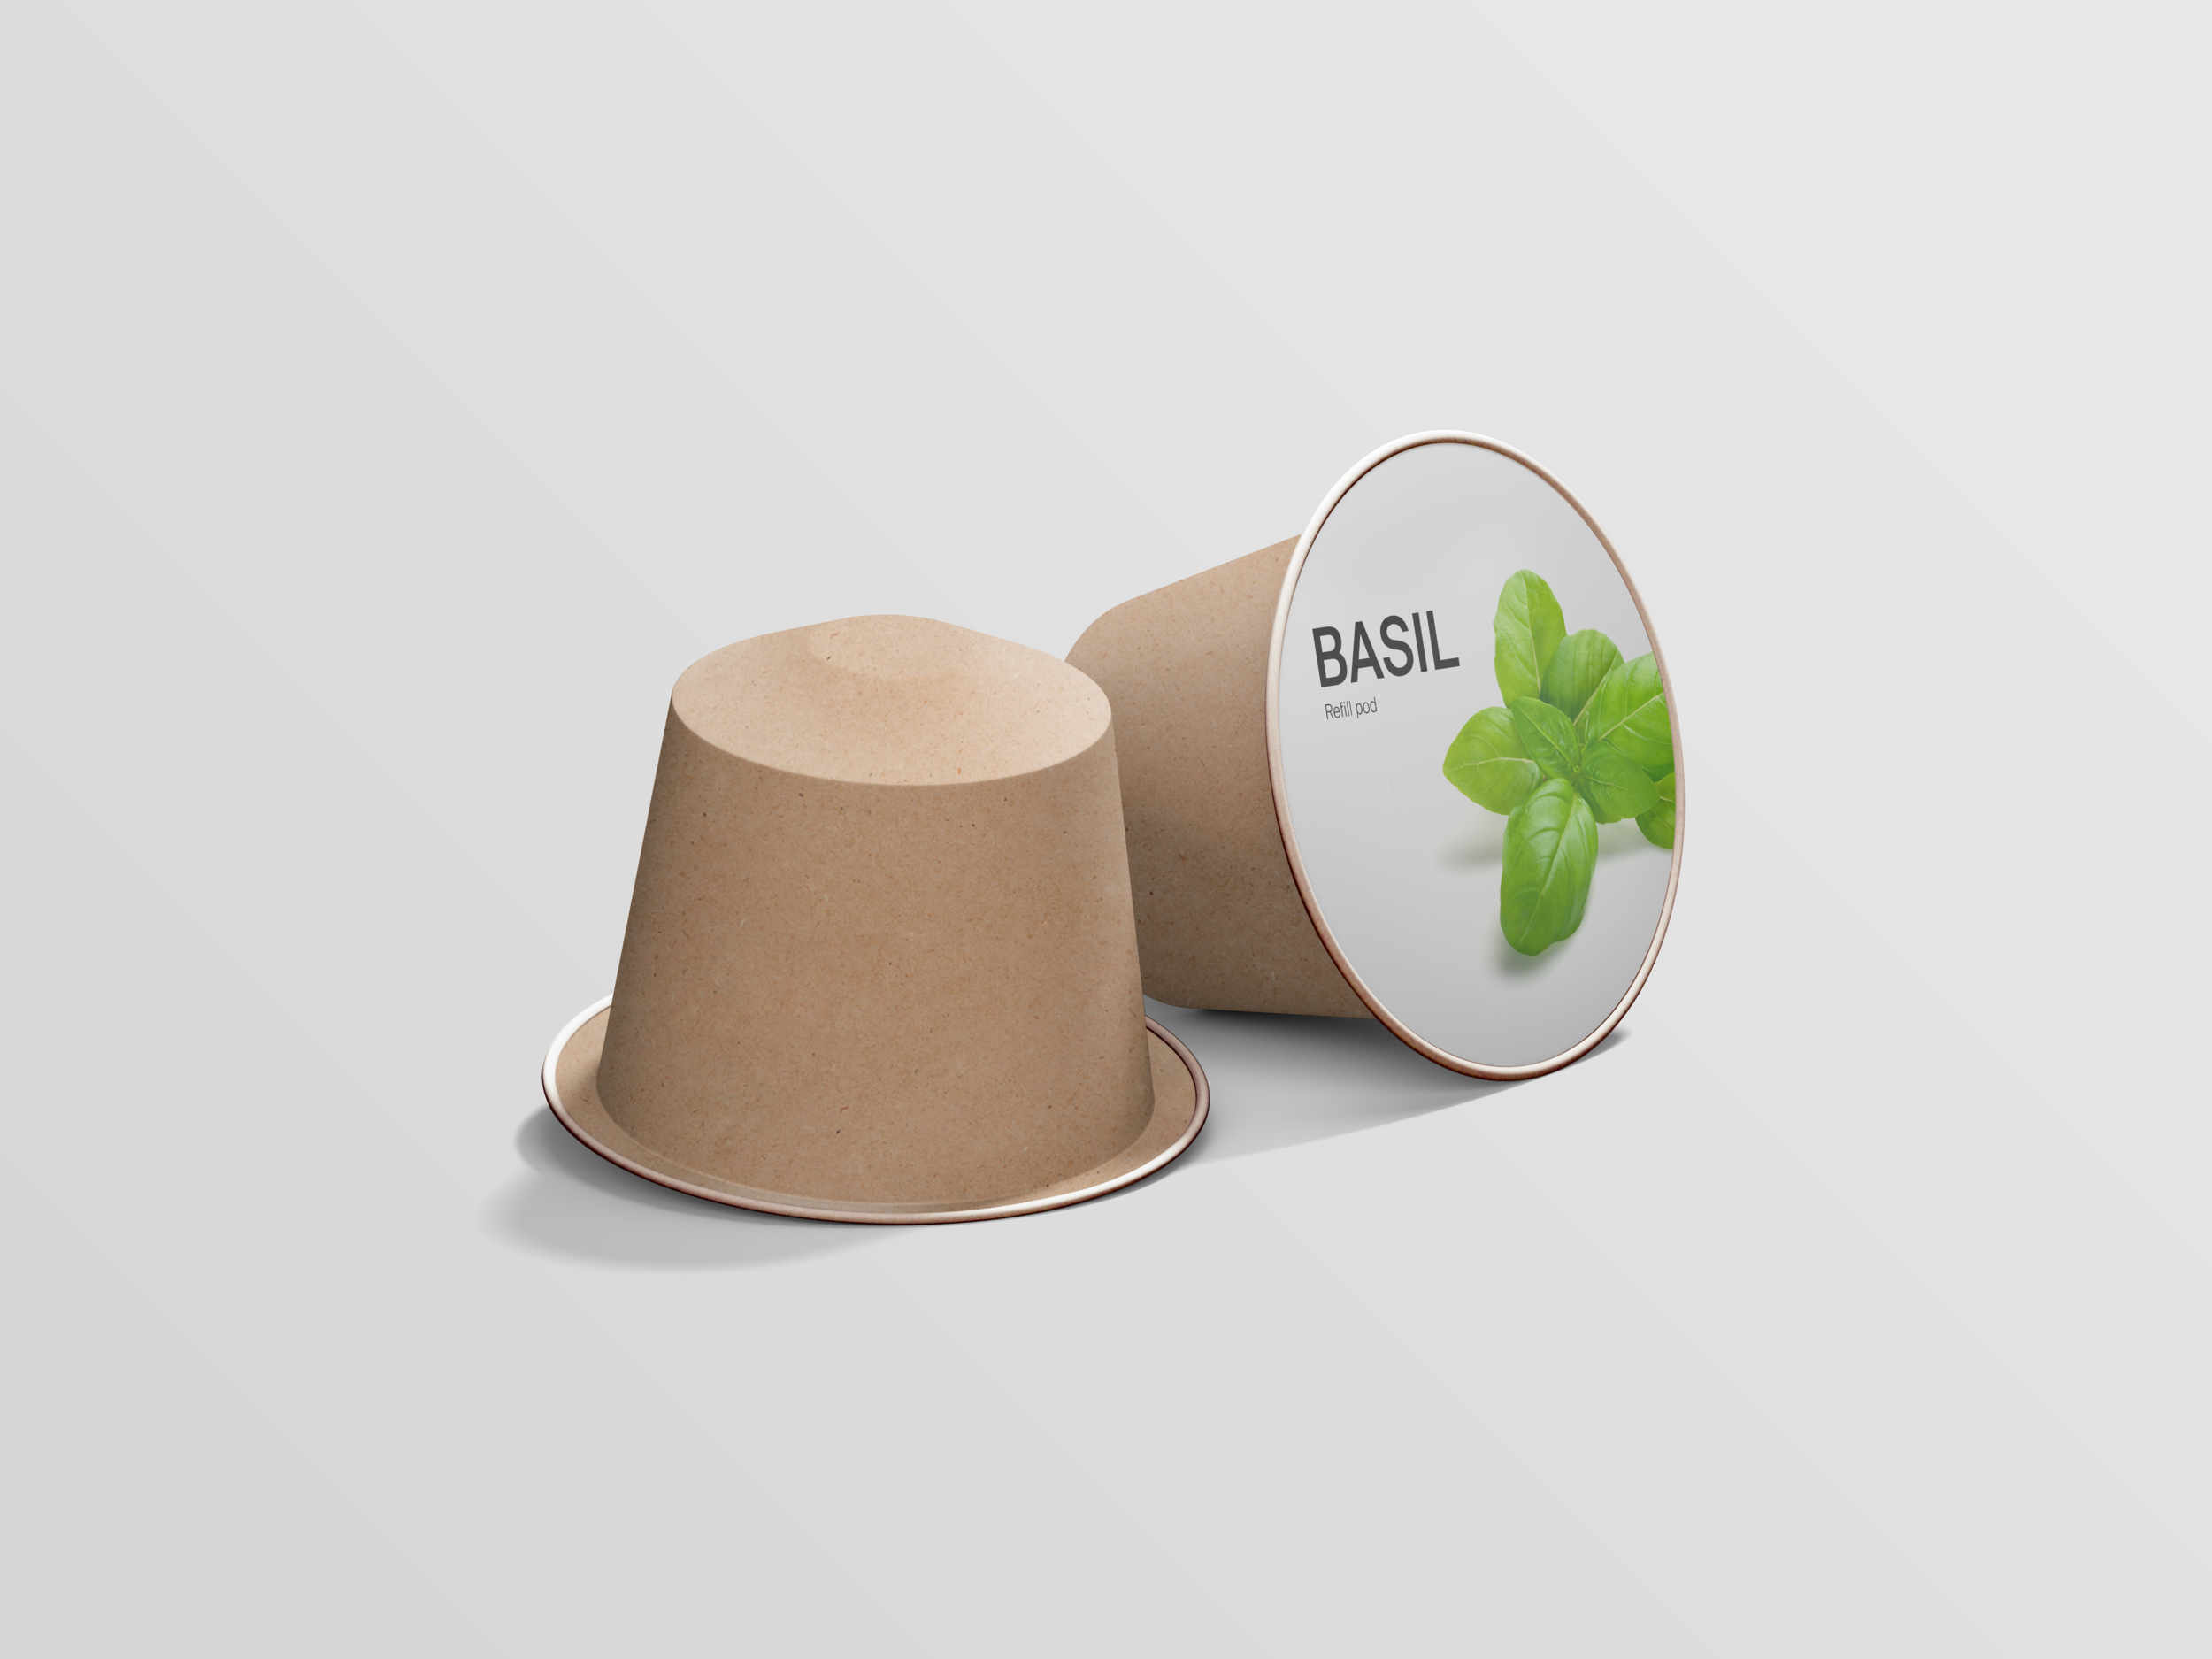 All plants do not have the same harvesting time, therefore compostable refill pods are available.